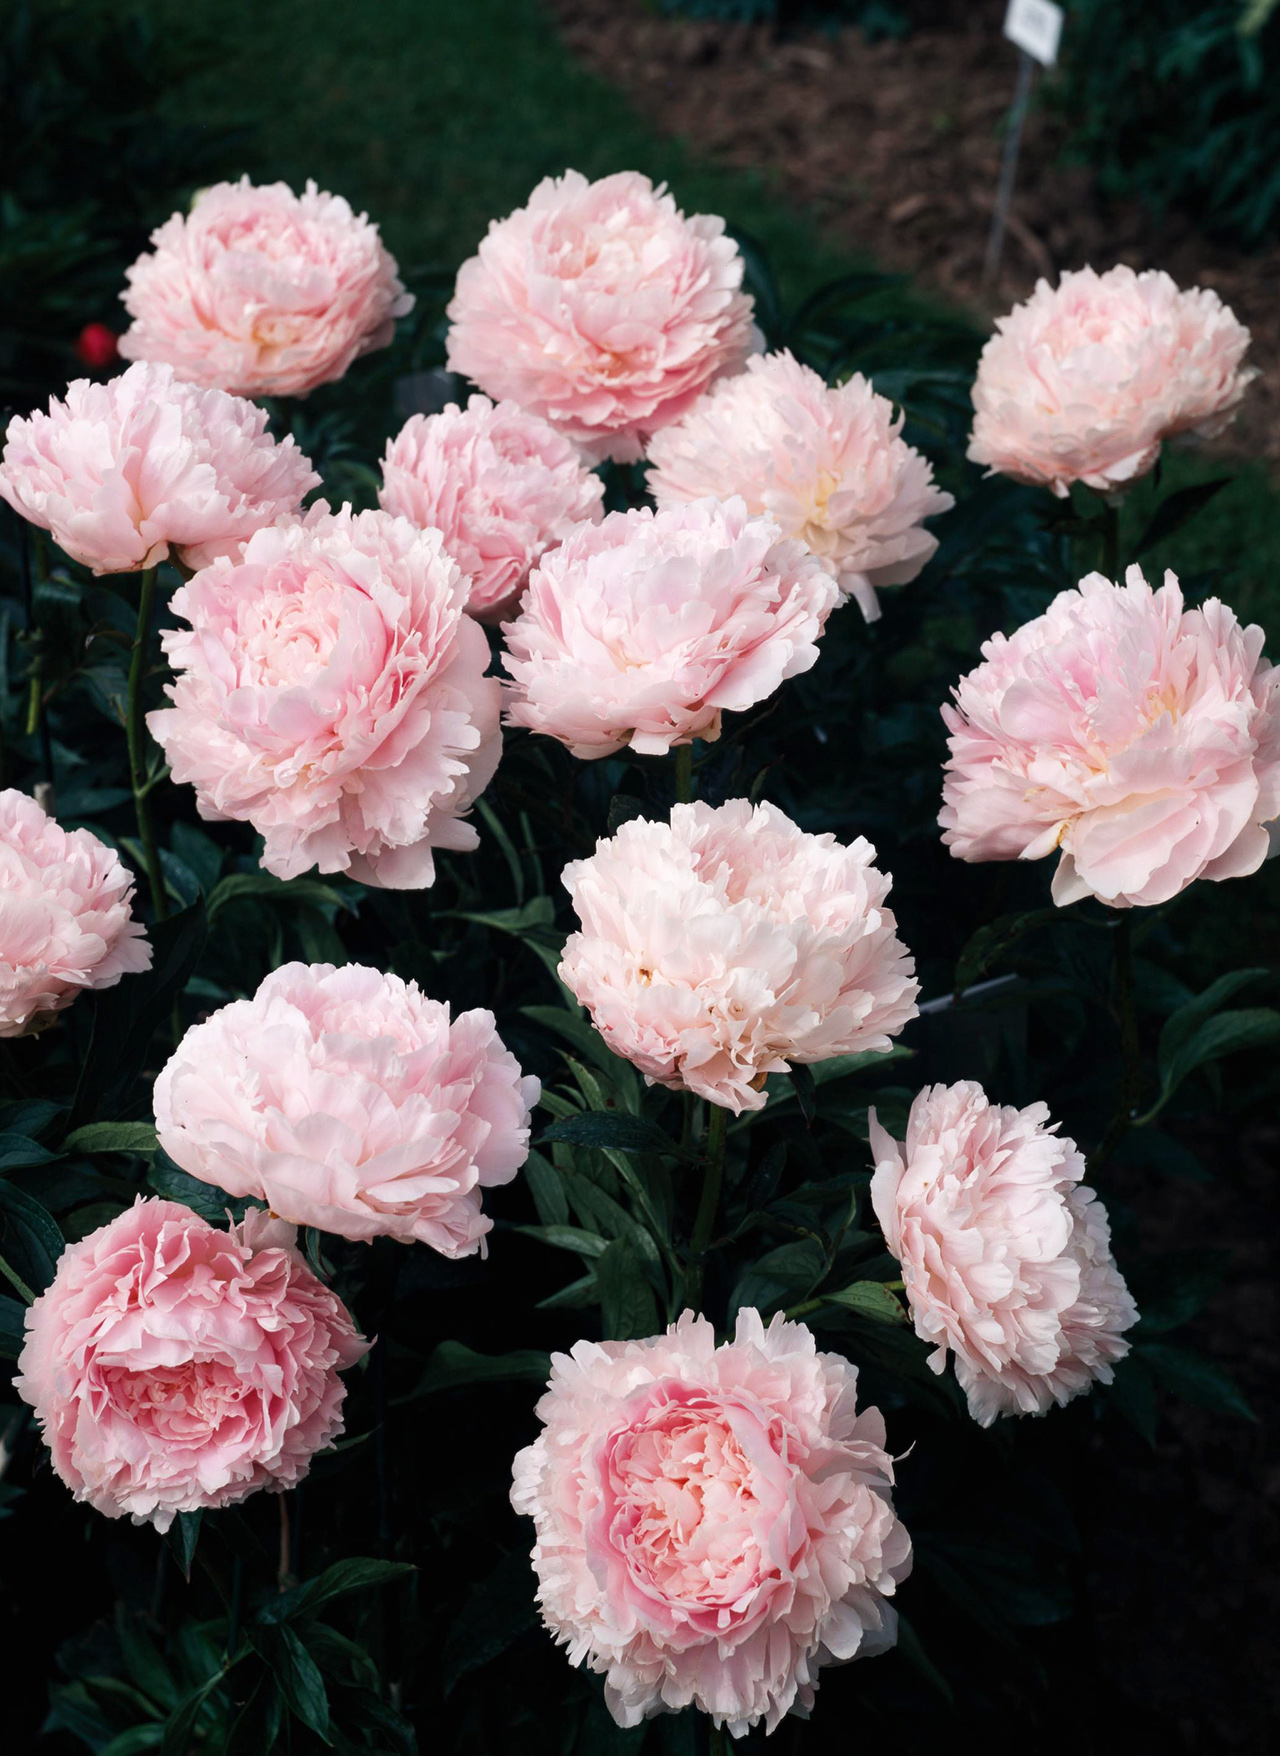 Paeonia Pillow Talk flowers